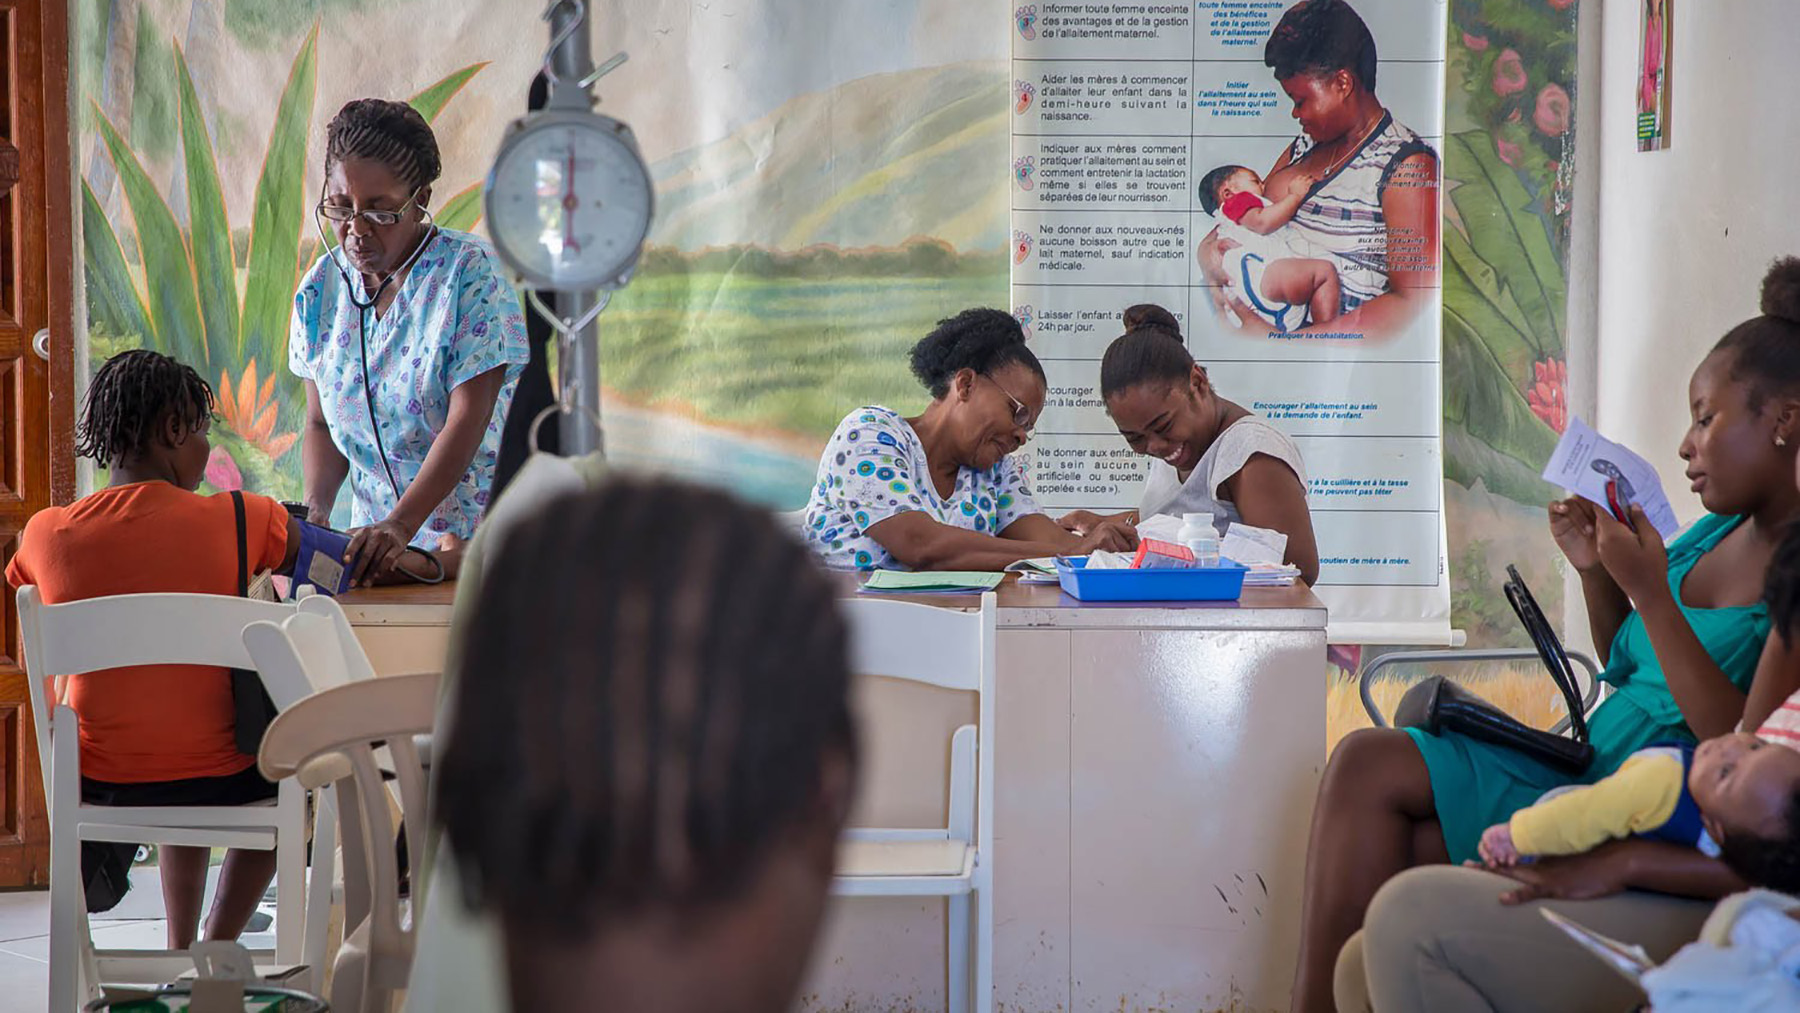 In this 2017 file photo, Maison de Naissance staff provide care for expectant mothers and newborns in Torbeck, Haiti.  After last month's 7.2-magnitude earthquake, clinic staff have been working to keep care continuous for area families that might otherwise not receive pre- or post-natal support. (Photo by Liam Storrings for Direct Relief)